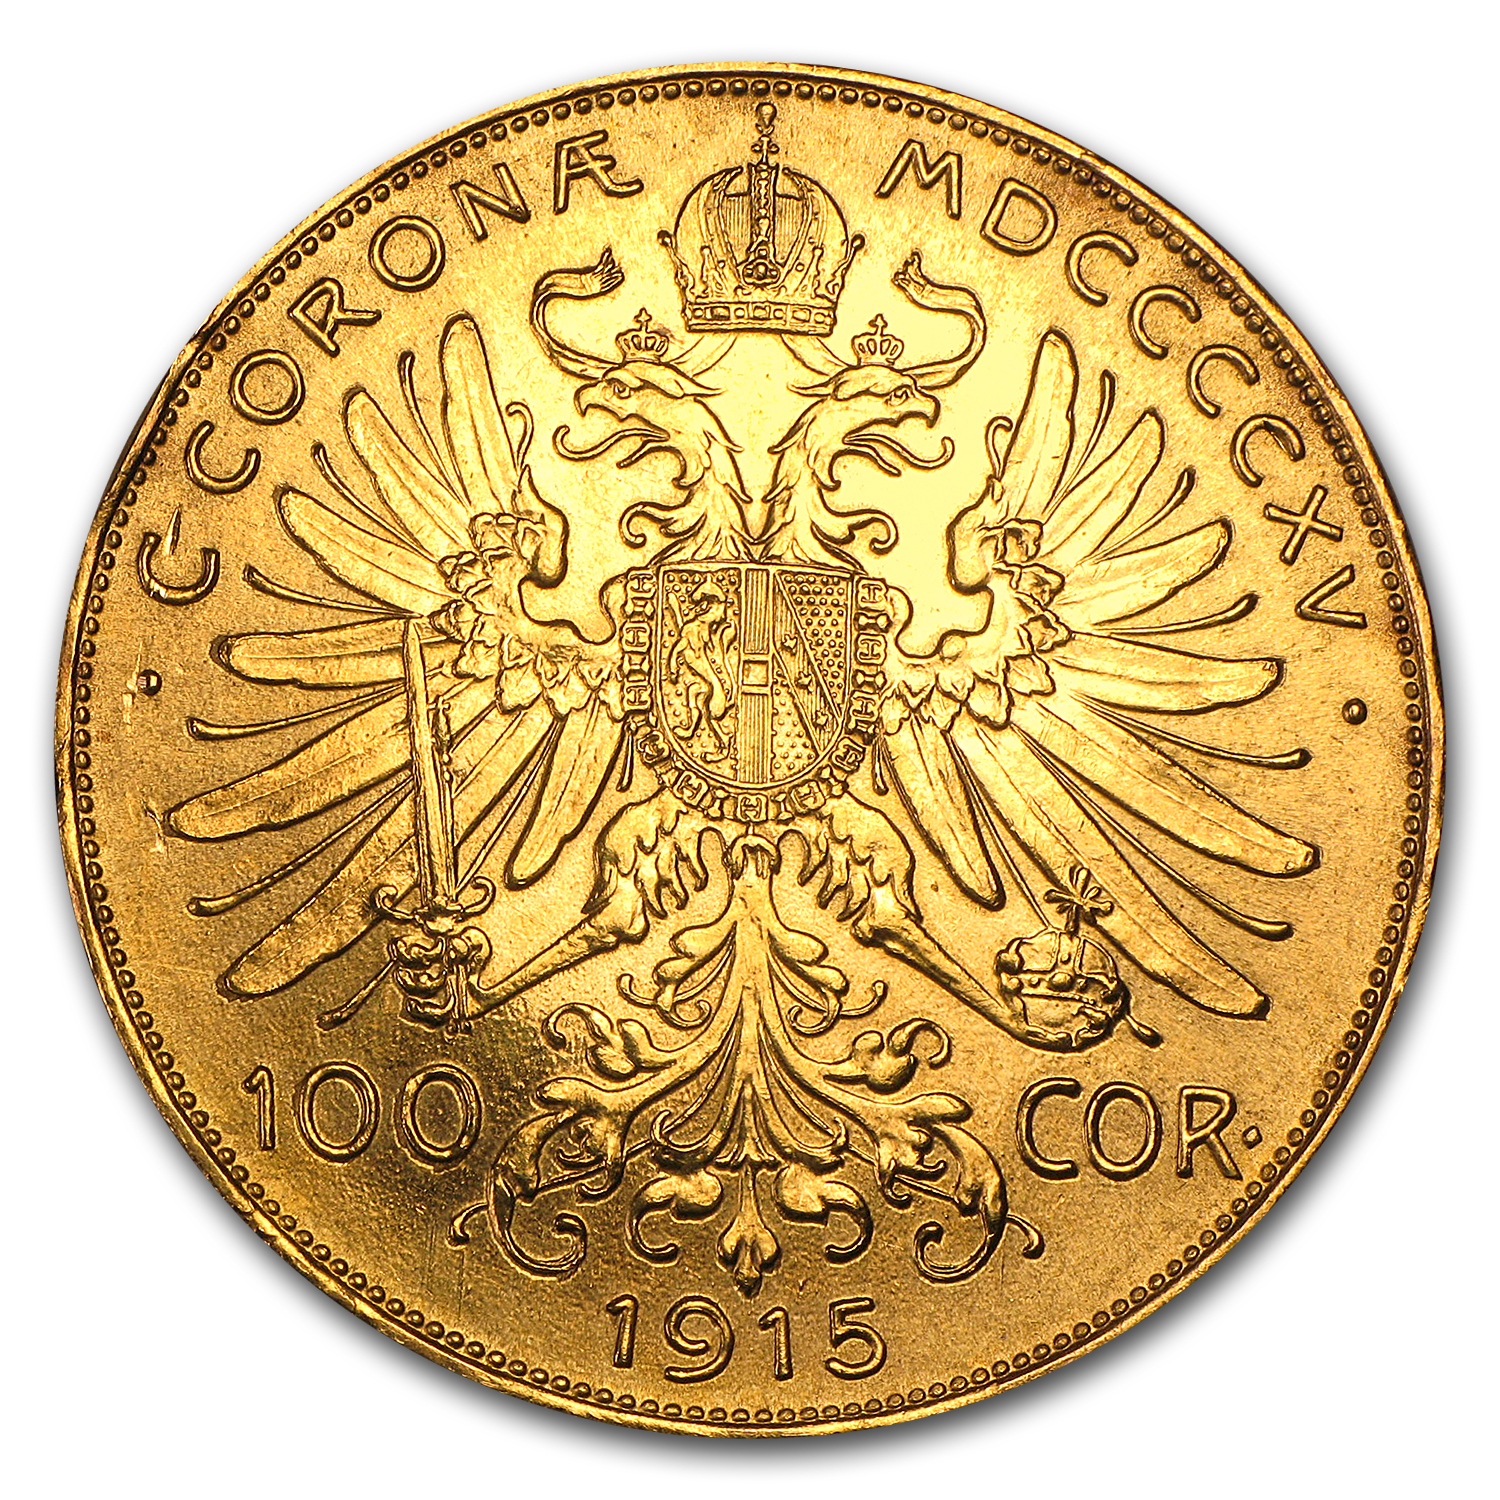 Austria Gold - 100 Coronas (Well Worn) (1915 Restrikes)